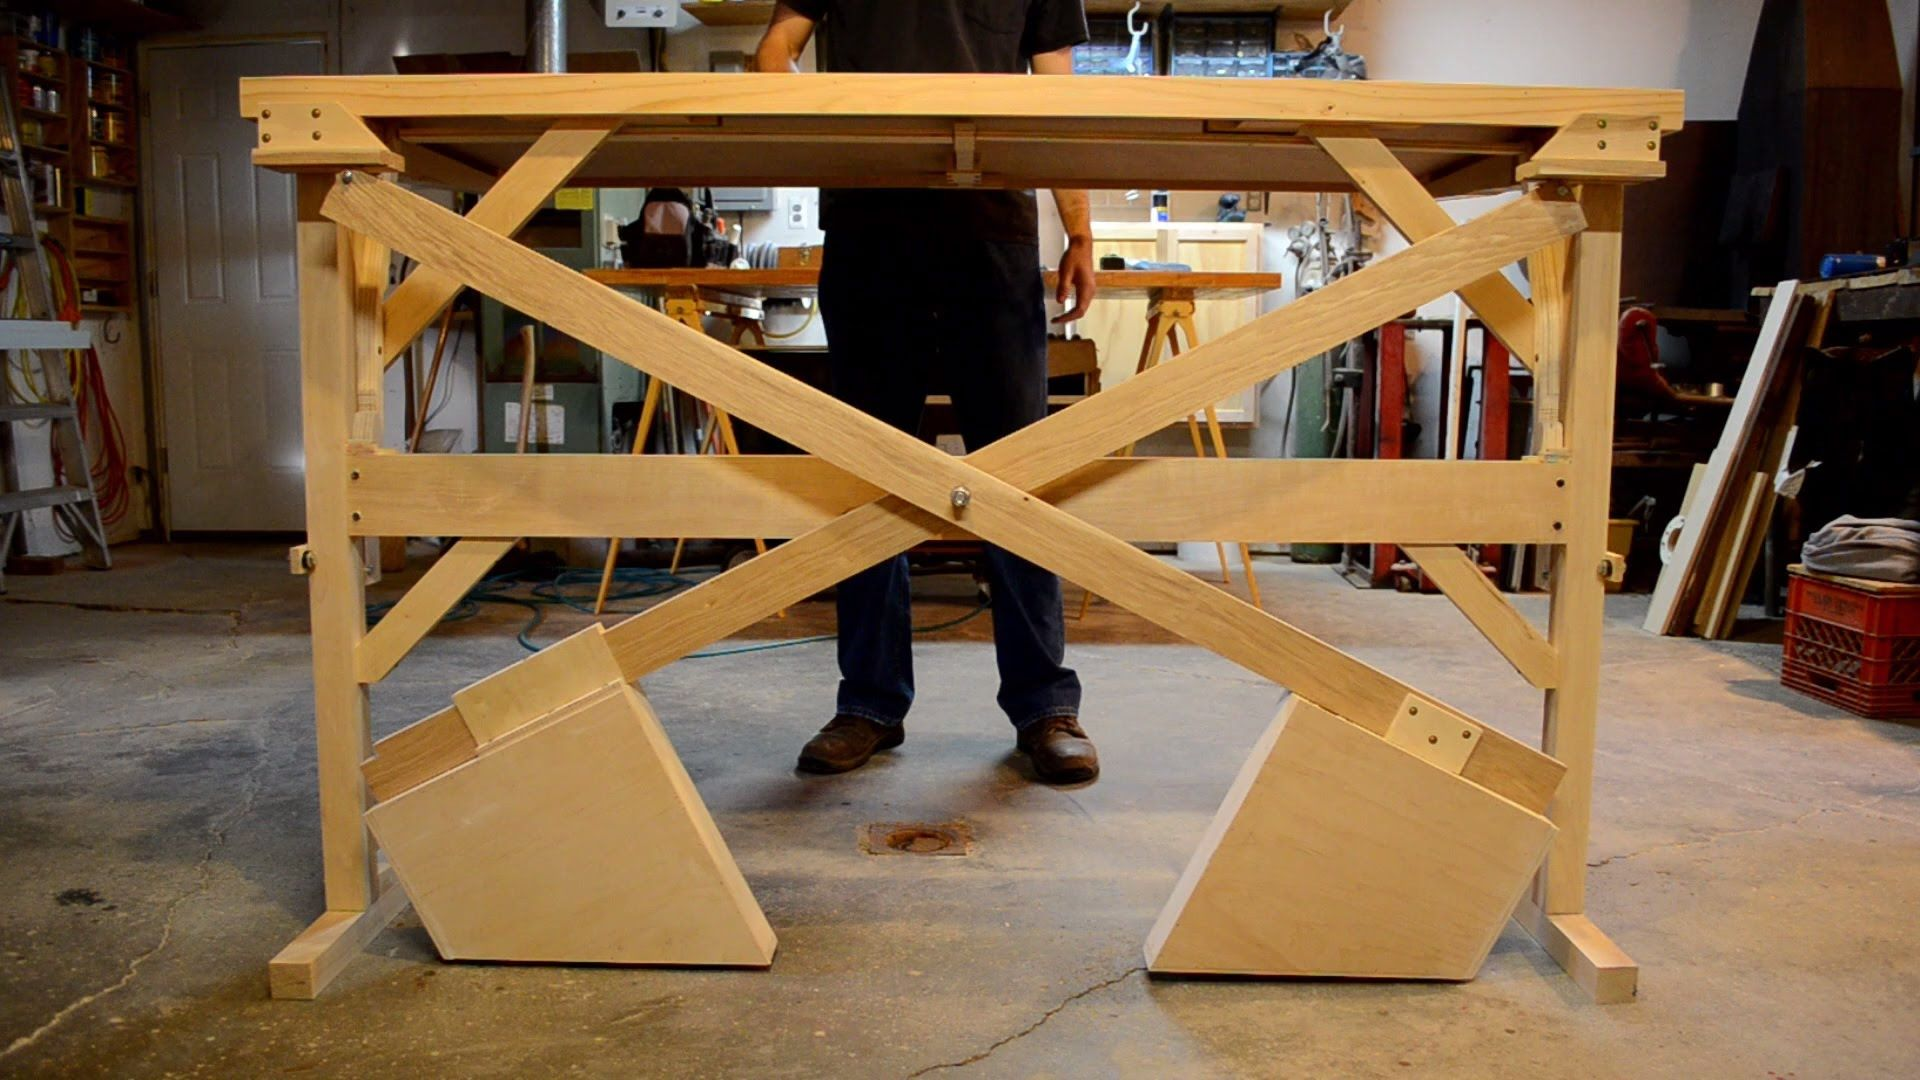 Wooden Counterweight Desk Or Table Standing Desk Plans Diy Standing Desk Wooden Standing Desk